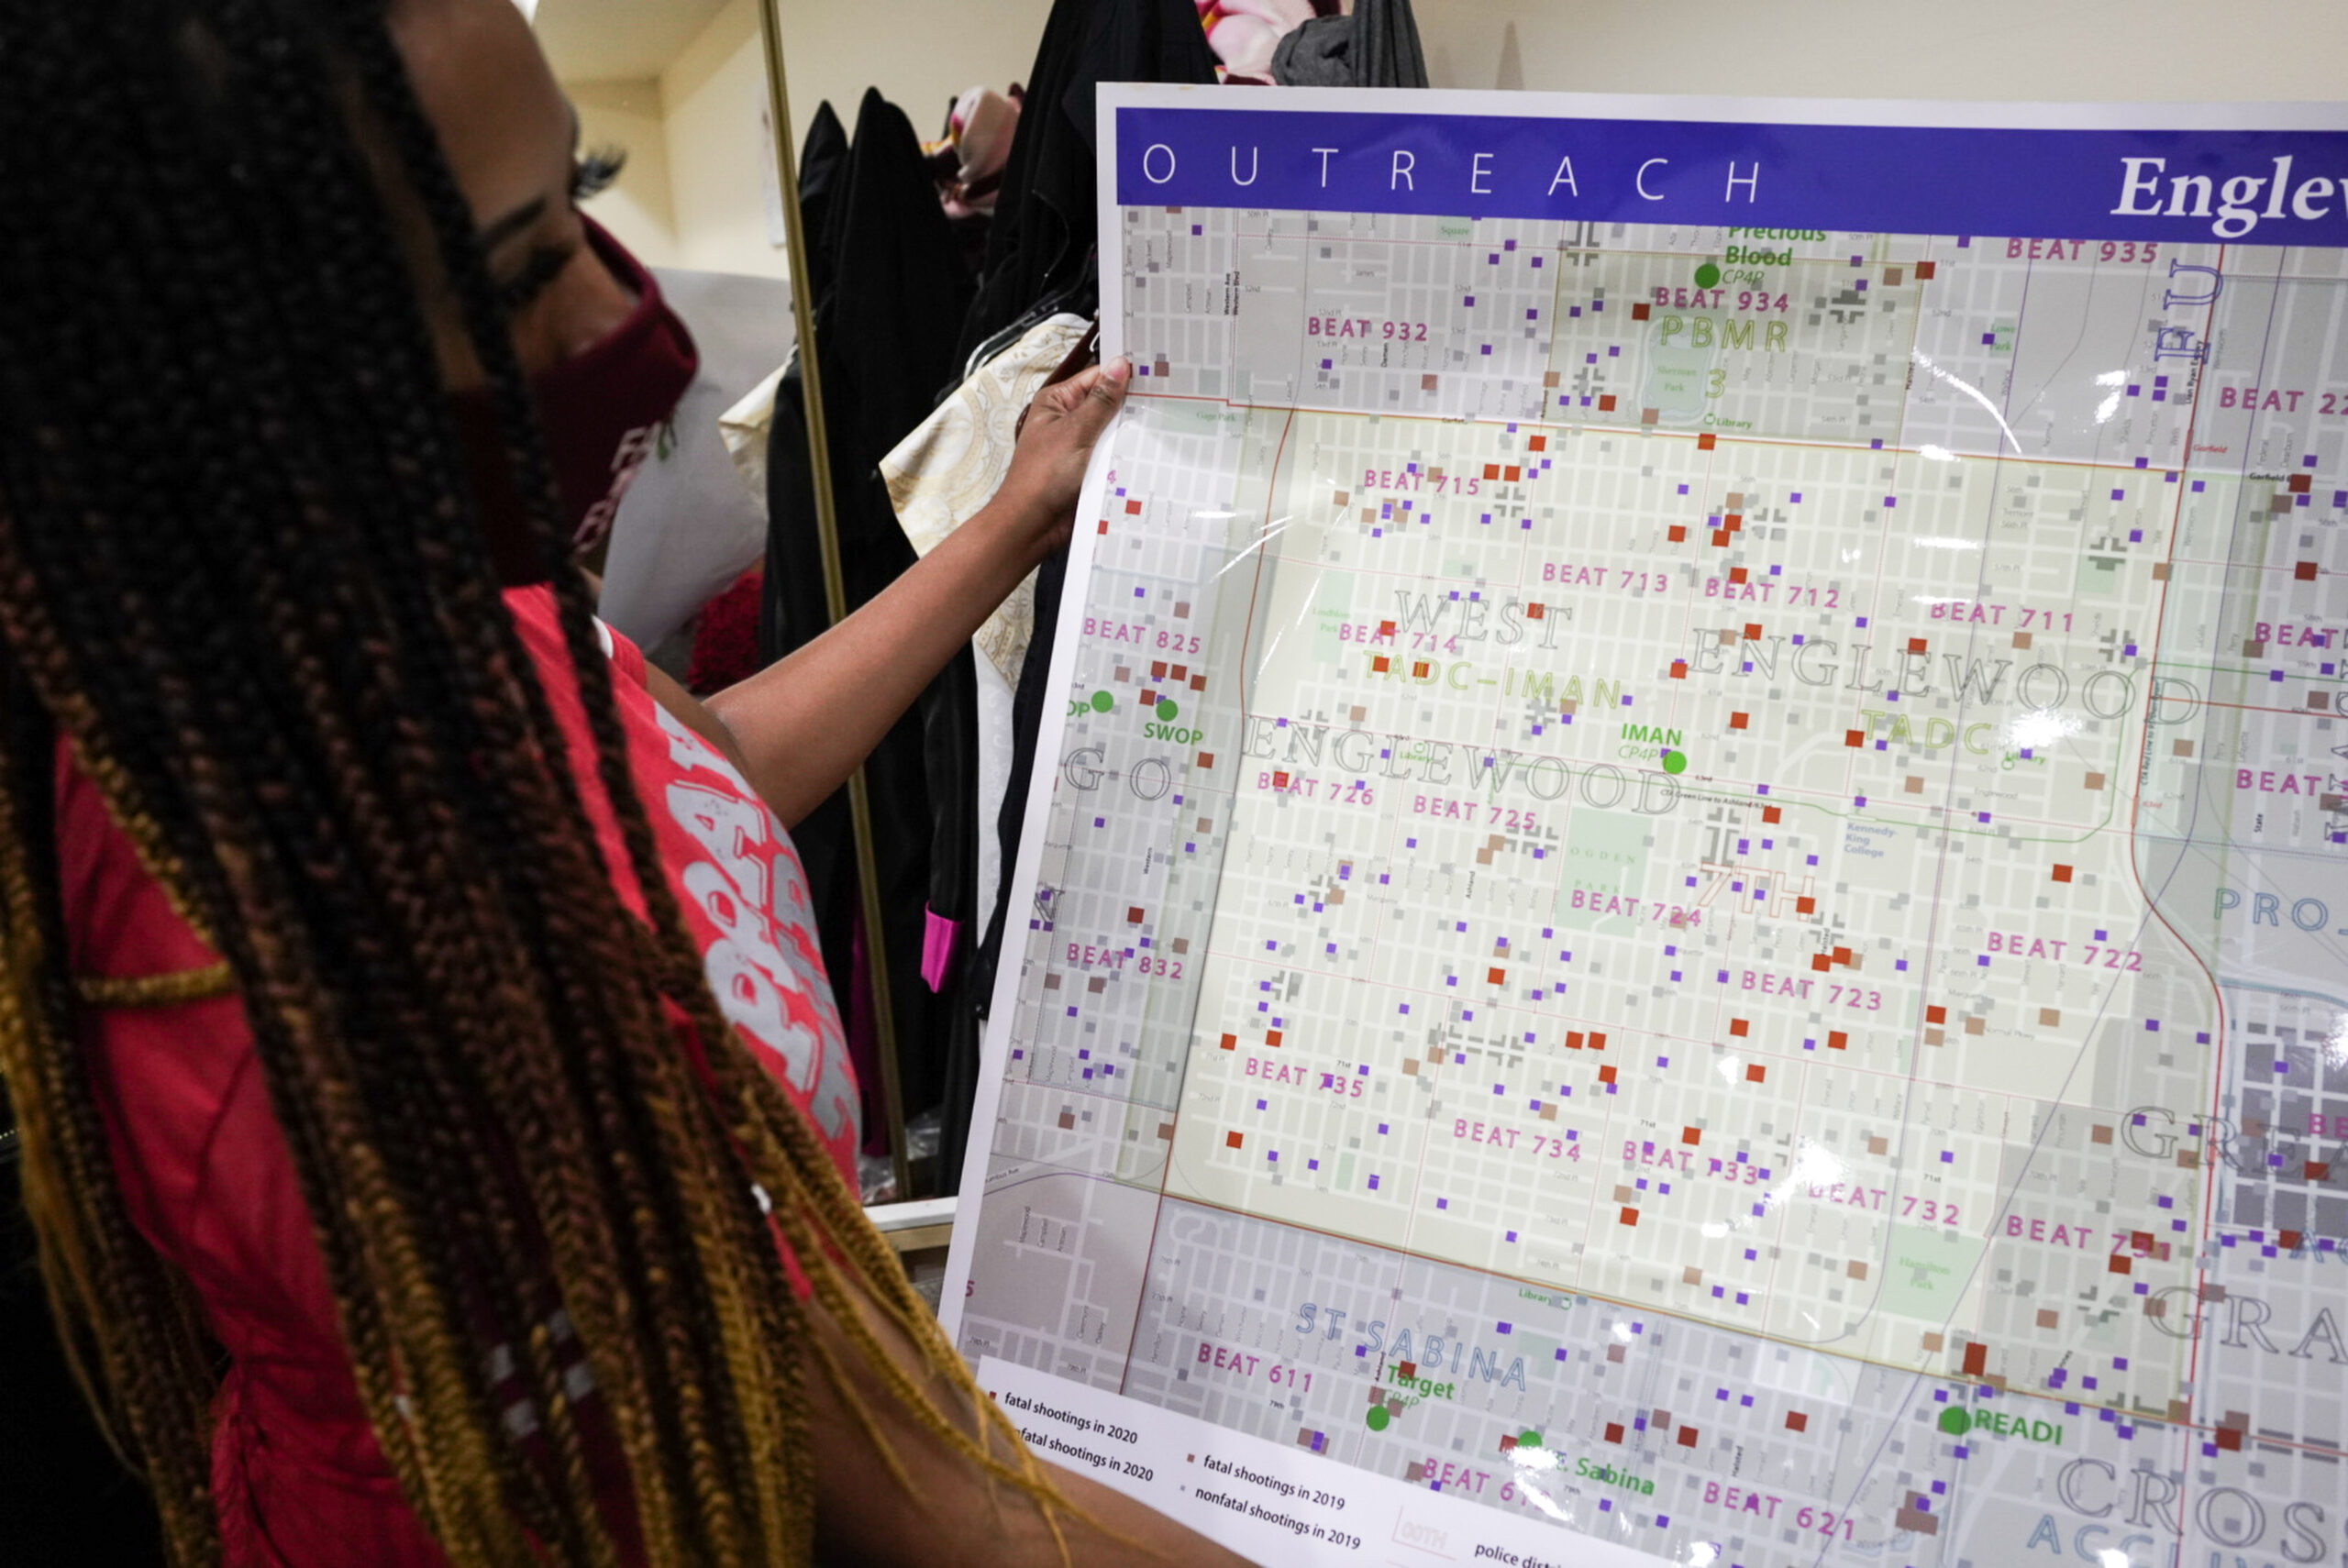 A woman holds up a map of the Englewood neighborhood of Chicago indicating where shootings have occurred.